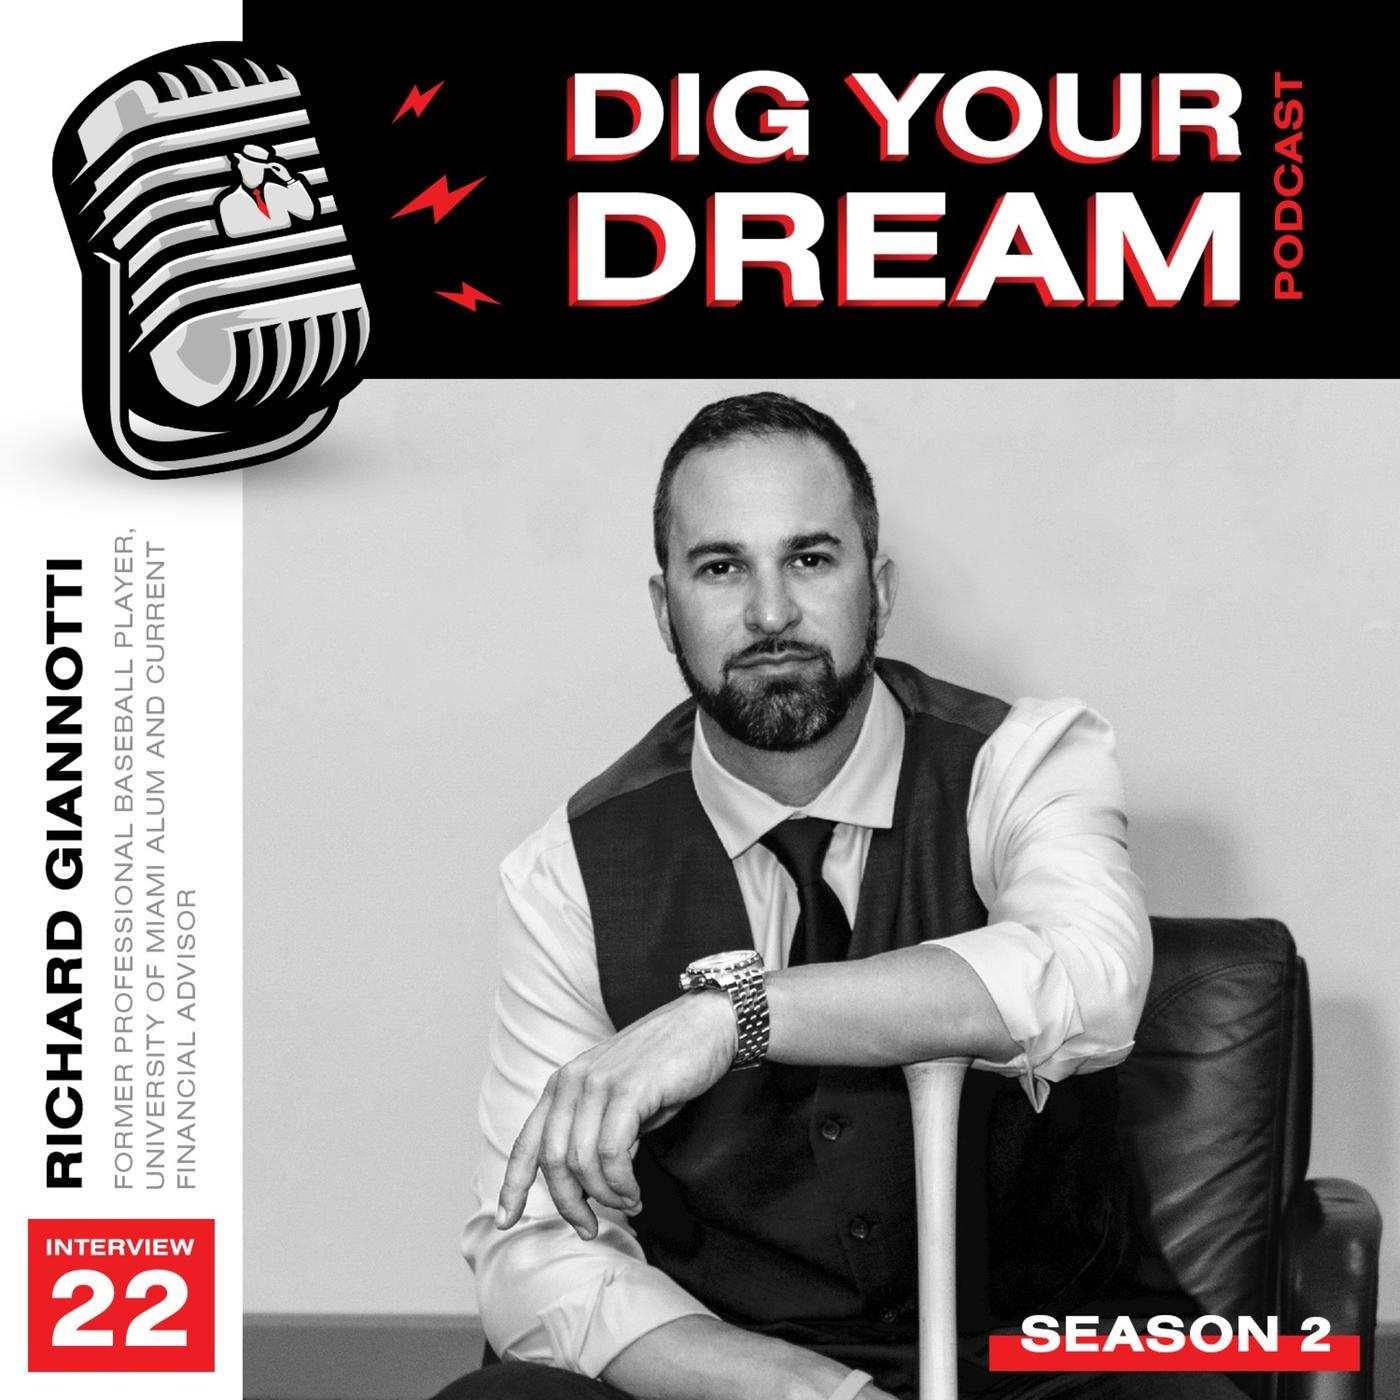 Digmi Discussion Interview 22 Richard Giannotti Dig Your Dream Podcast Listen Notes How much of richard giannotti's work have you seen? listen notes